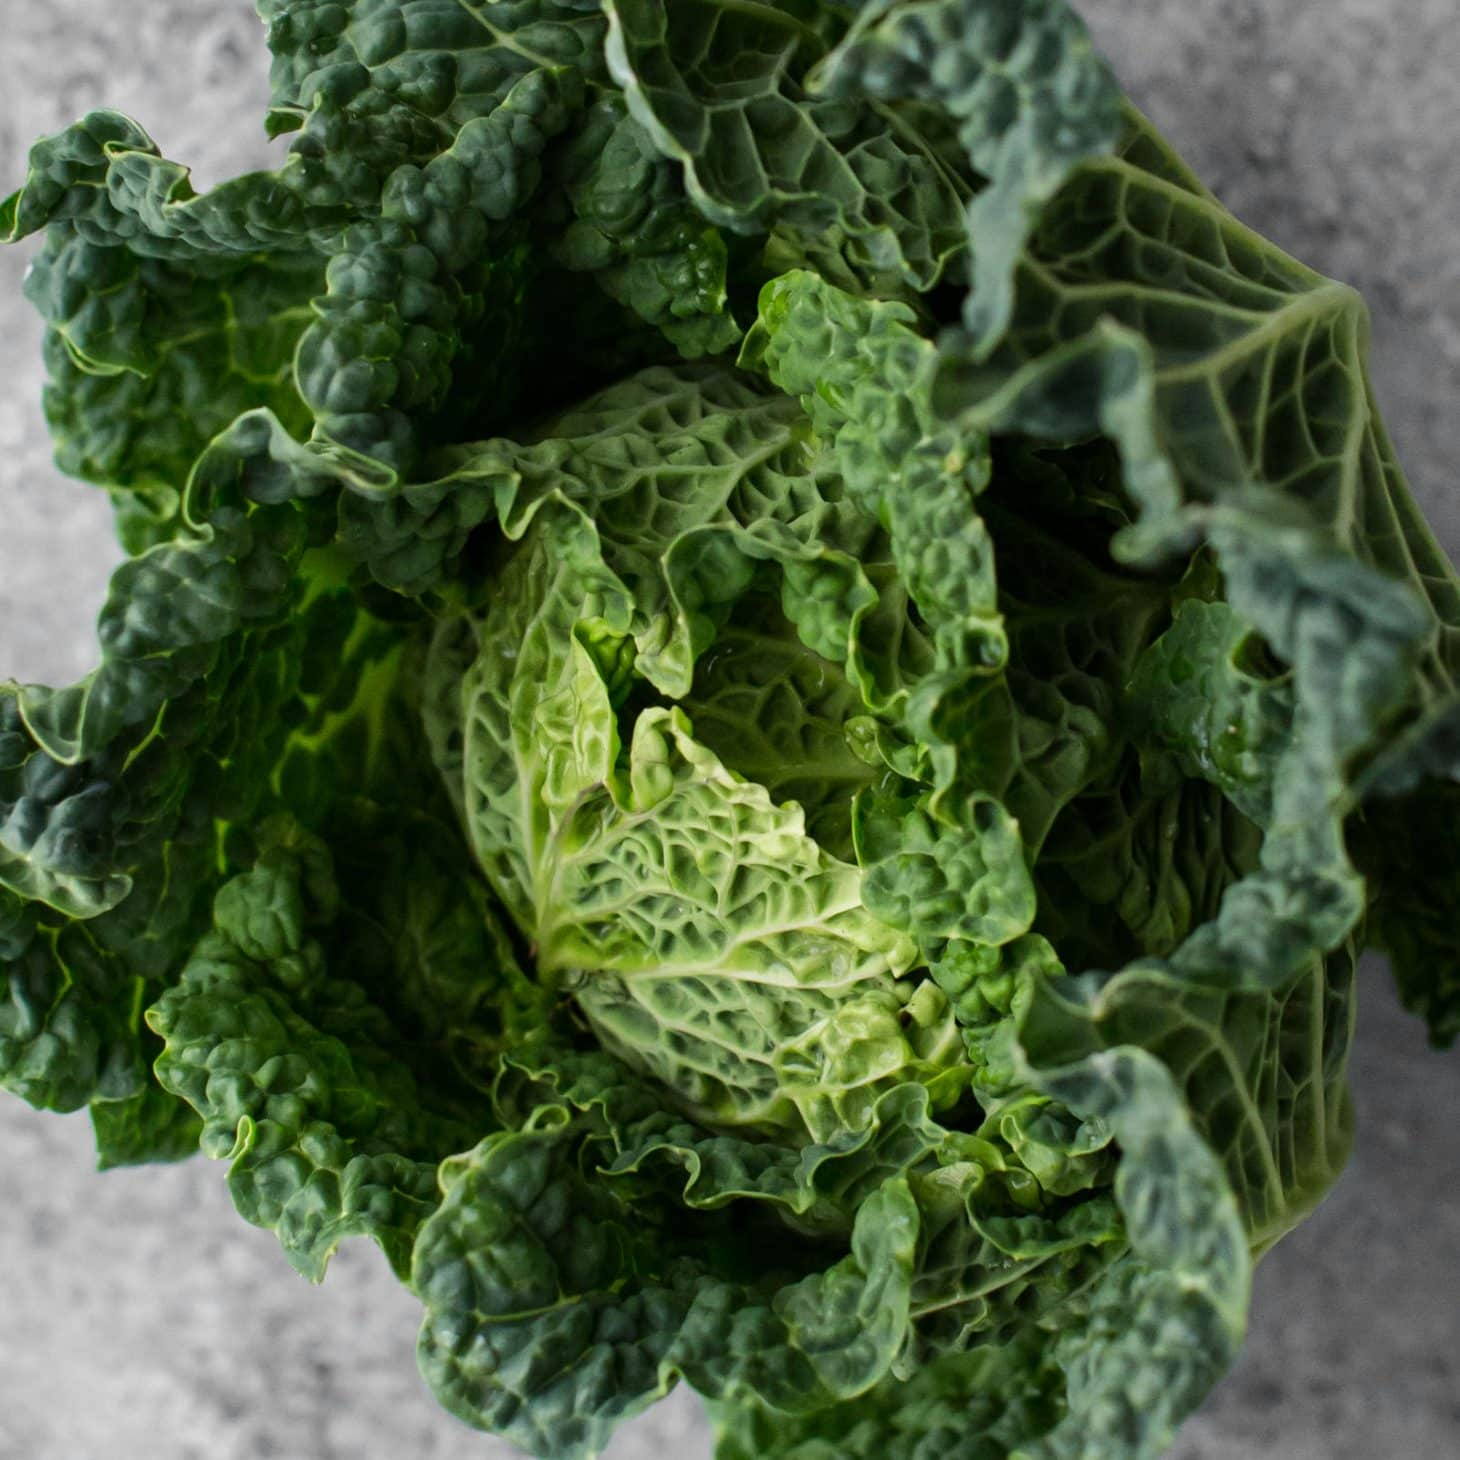 Cabbage- Explore an Ingredient